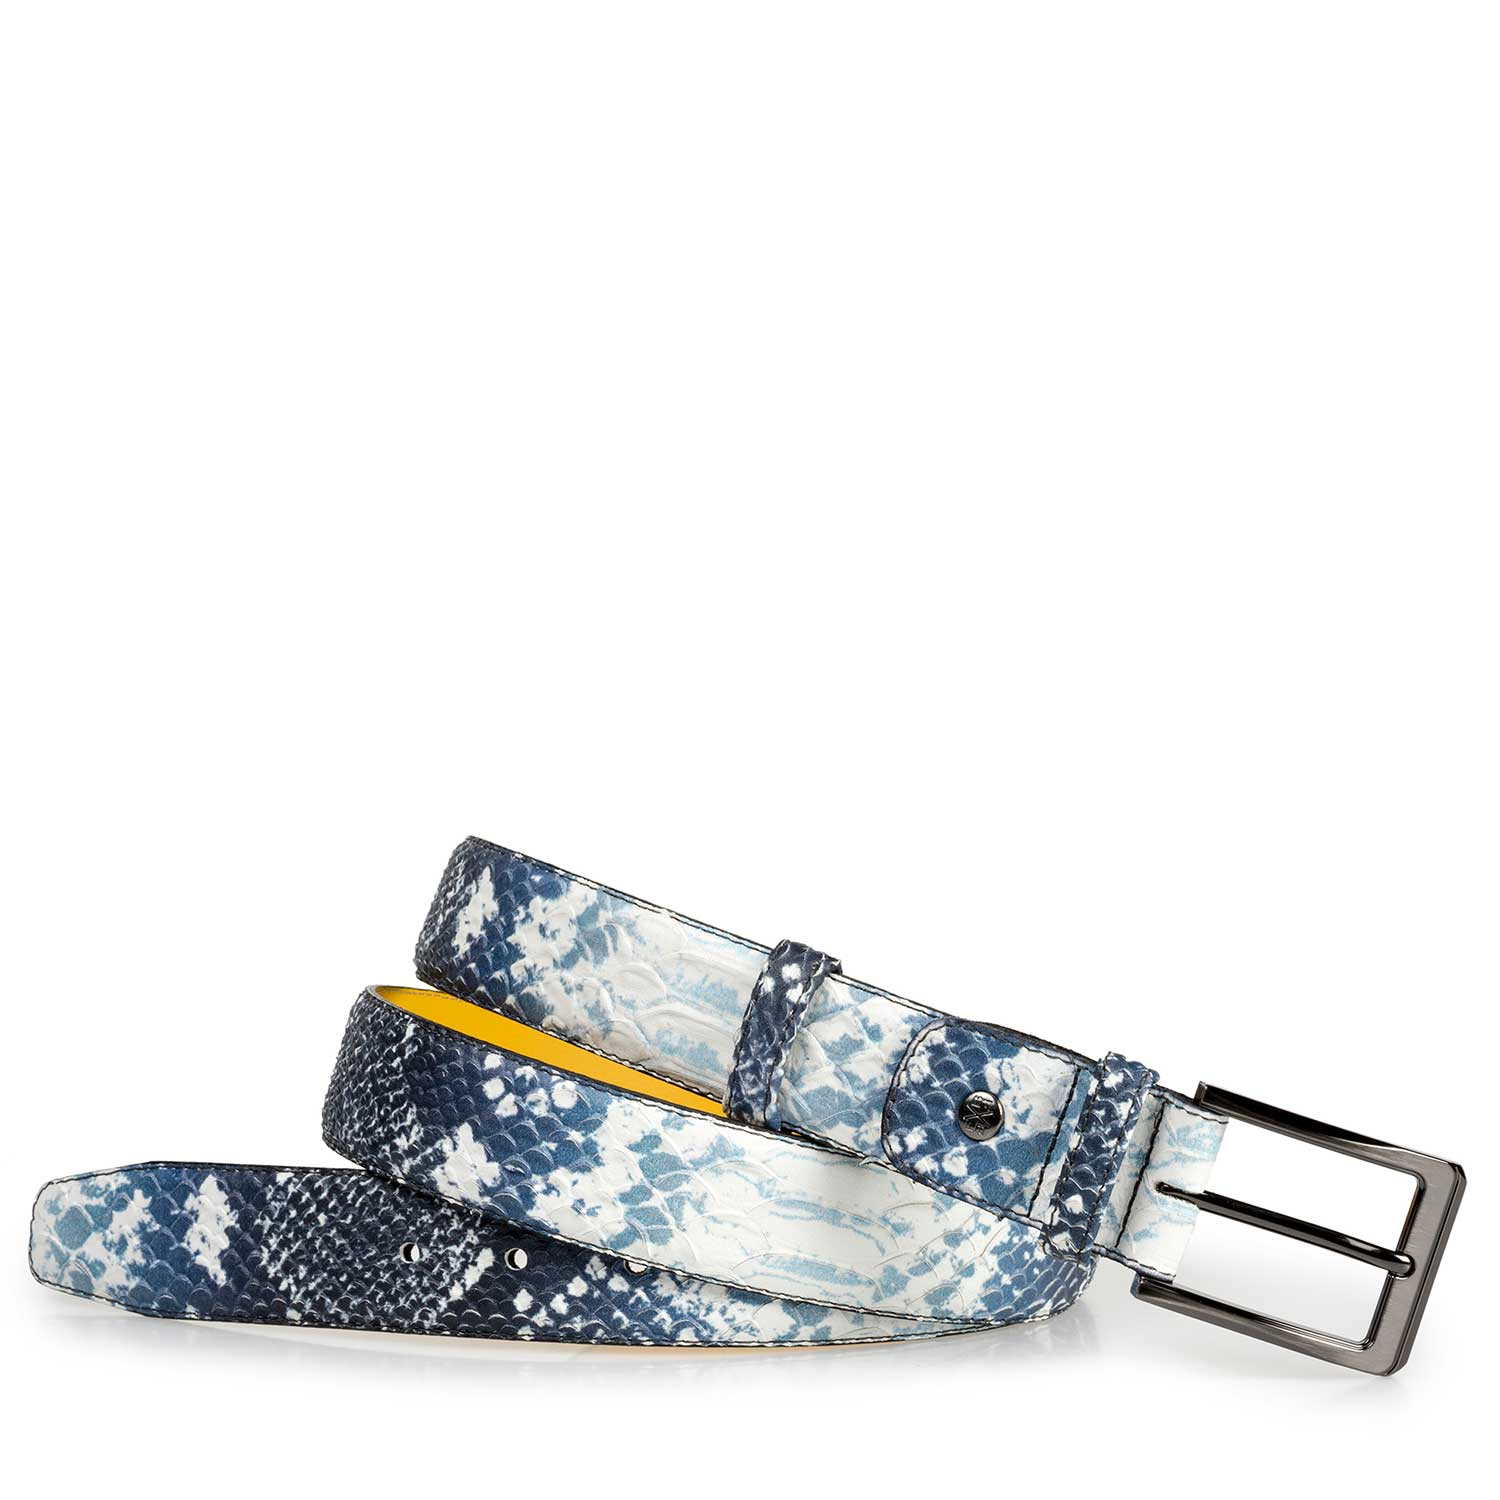 75182/03 - Dark blue leather belt with a snake pattern